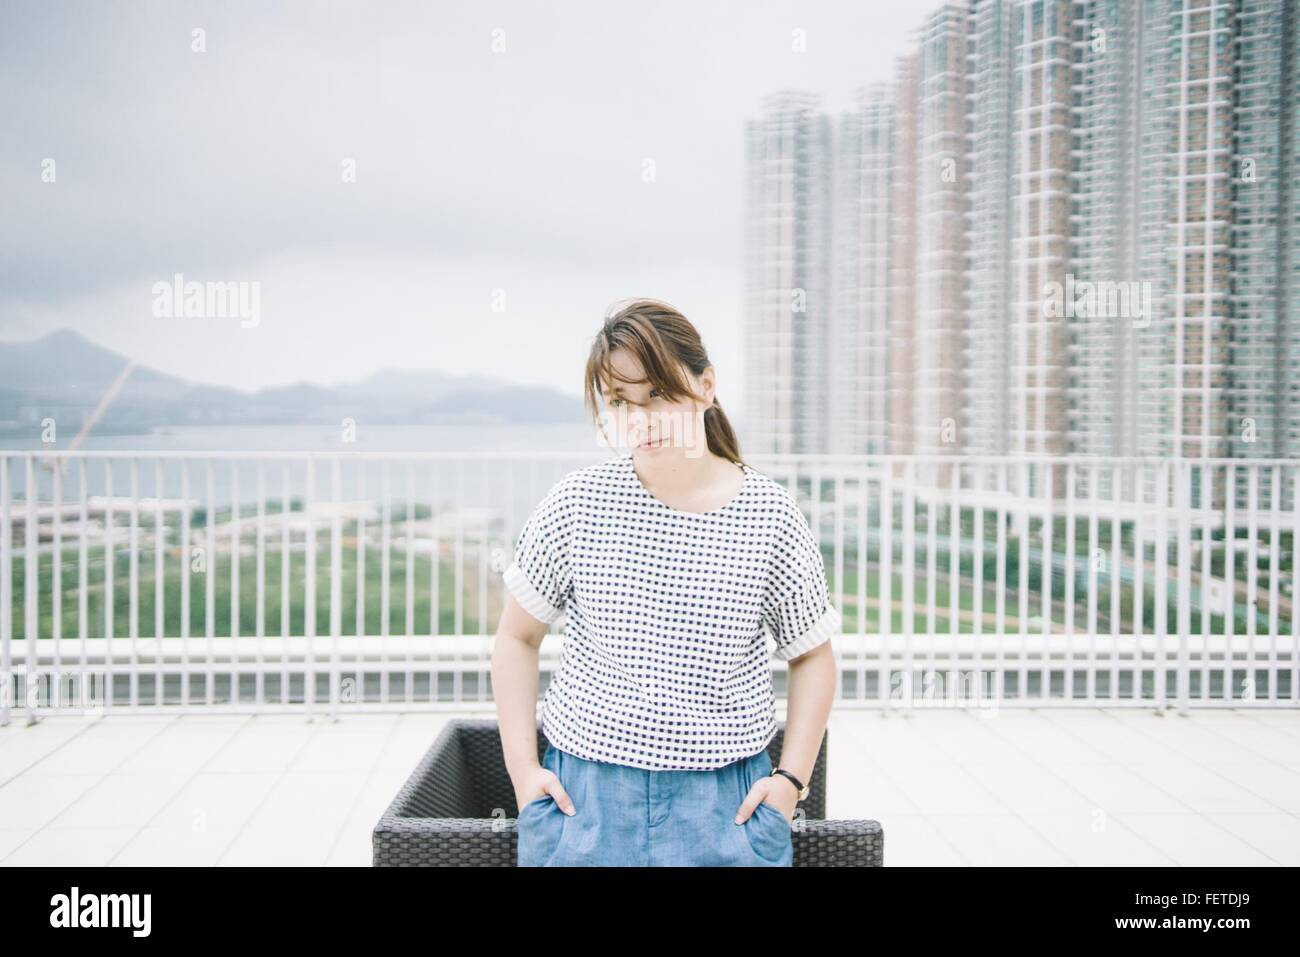 Thoughtful Woman Standing Against Modern Buildings - Stock Image